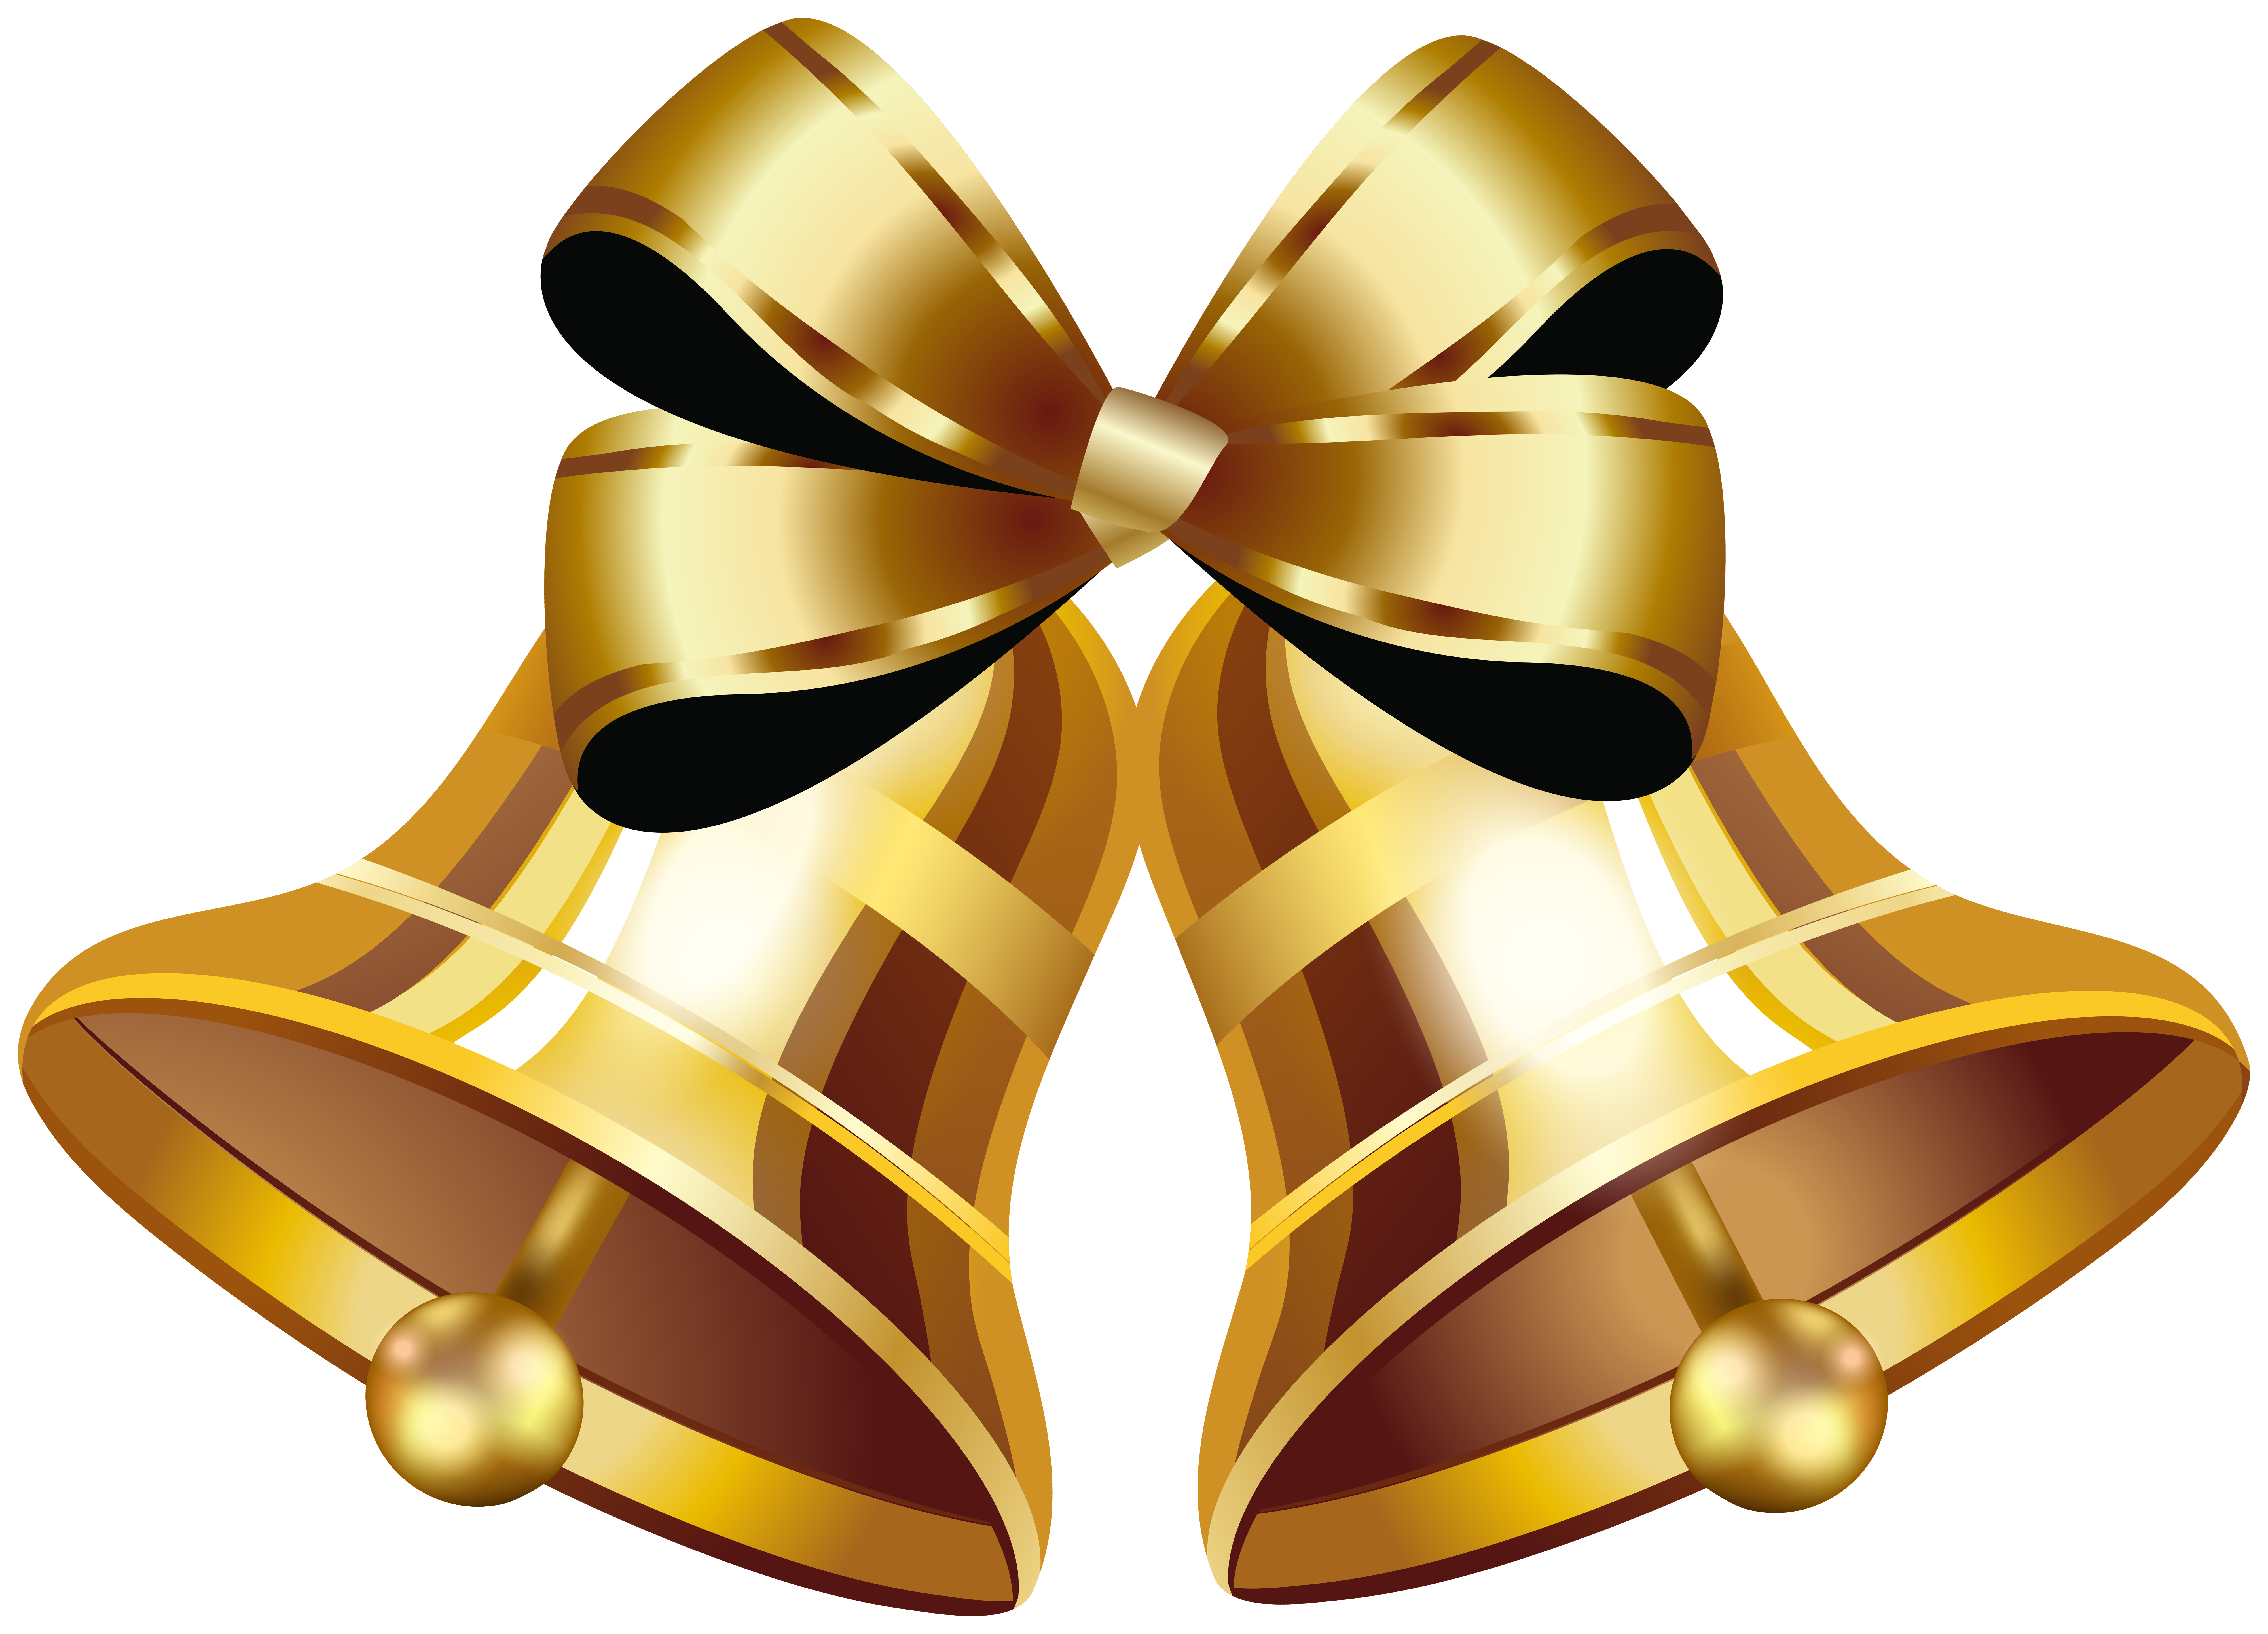 Christmas Gold Bells Png Clip Art Image Gallery Yopriceville High Quality Images And Transparent Png Free Clipart Art Images Clip Art Free Clip Art